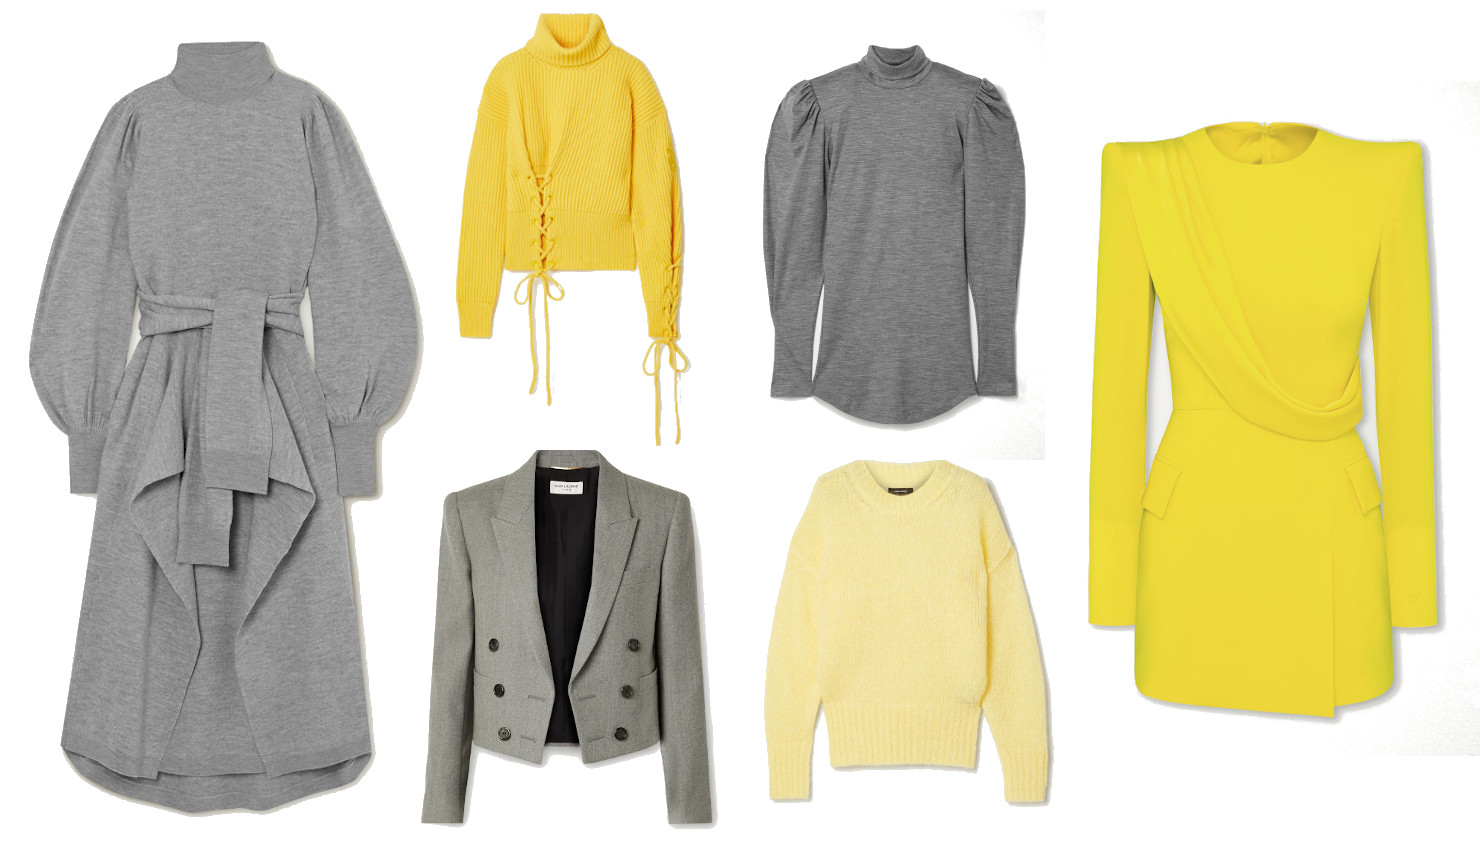 Pantone Ultimate Gray and Illuminating Chosen Colors of the Year 2021